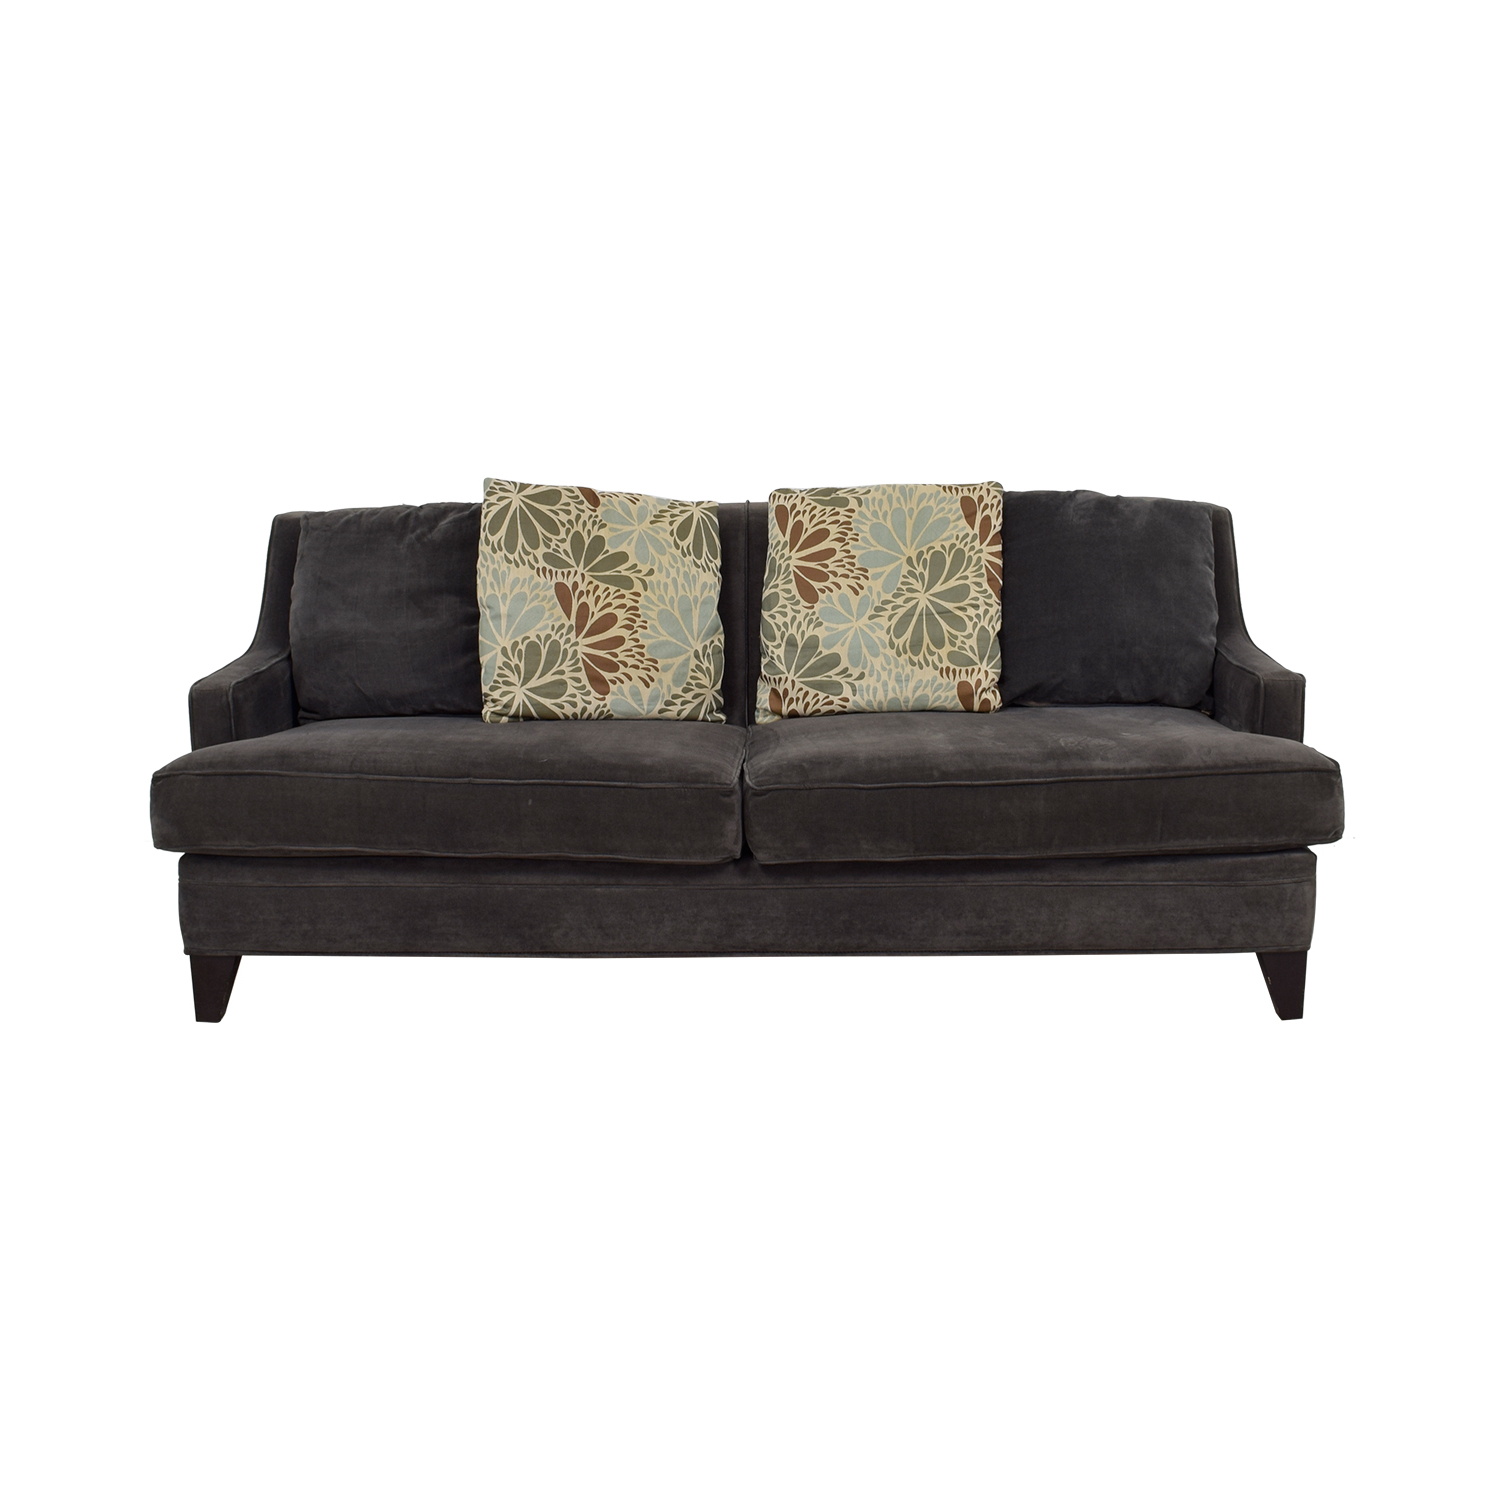 [%76% Off – Jordan's Furniture Jordan's Furniture Grey Microfiber Two Cushion  Sofa / Sofas In Well Known Bryant Loveseats With Cushion|Bryant Loveseats With Cushion Throughout Widely Used 76% Off – Jordan's Furniture Jordan's Furniture Grey Microfiber Two Cushion  Sofa / Sofas|Best And Newest Bryant Loveseats With Cushion Intended For 76% Off – Jordan's Furniture Jordan's Furniture Grey Microfiber Two Cushion  Sofa / Sofas|Trendy 76% Off – Jordan's Furniture Jordan's Furniture Grey Microfiber Two Cushion  Sofa / Sofas For Bryant Loveseats With Cushion%] (View 1 of 20)